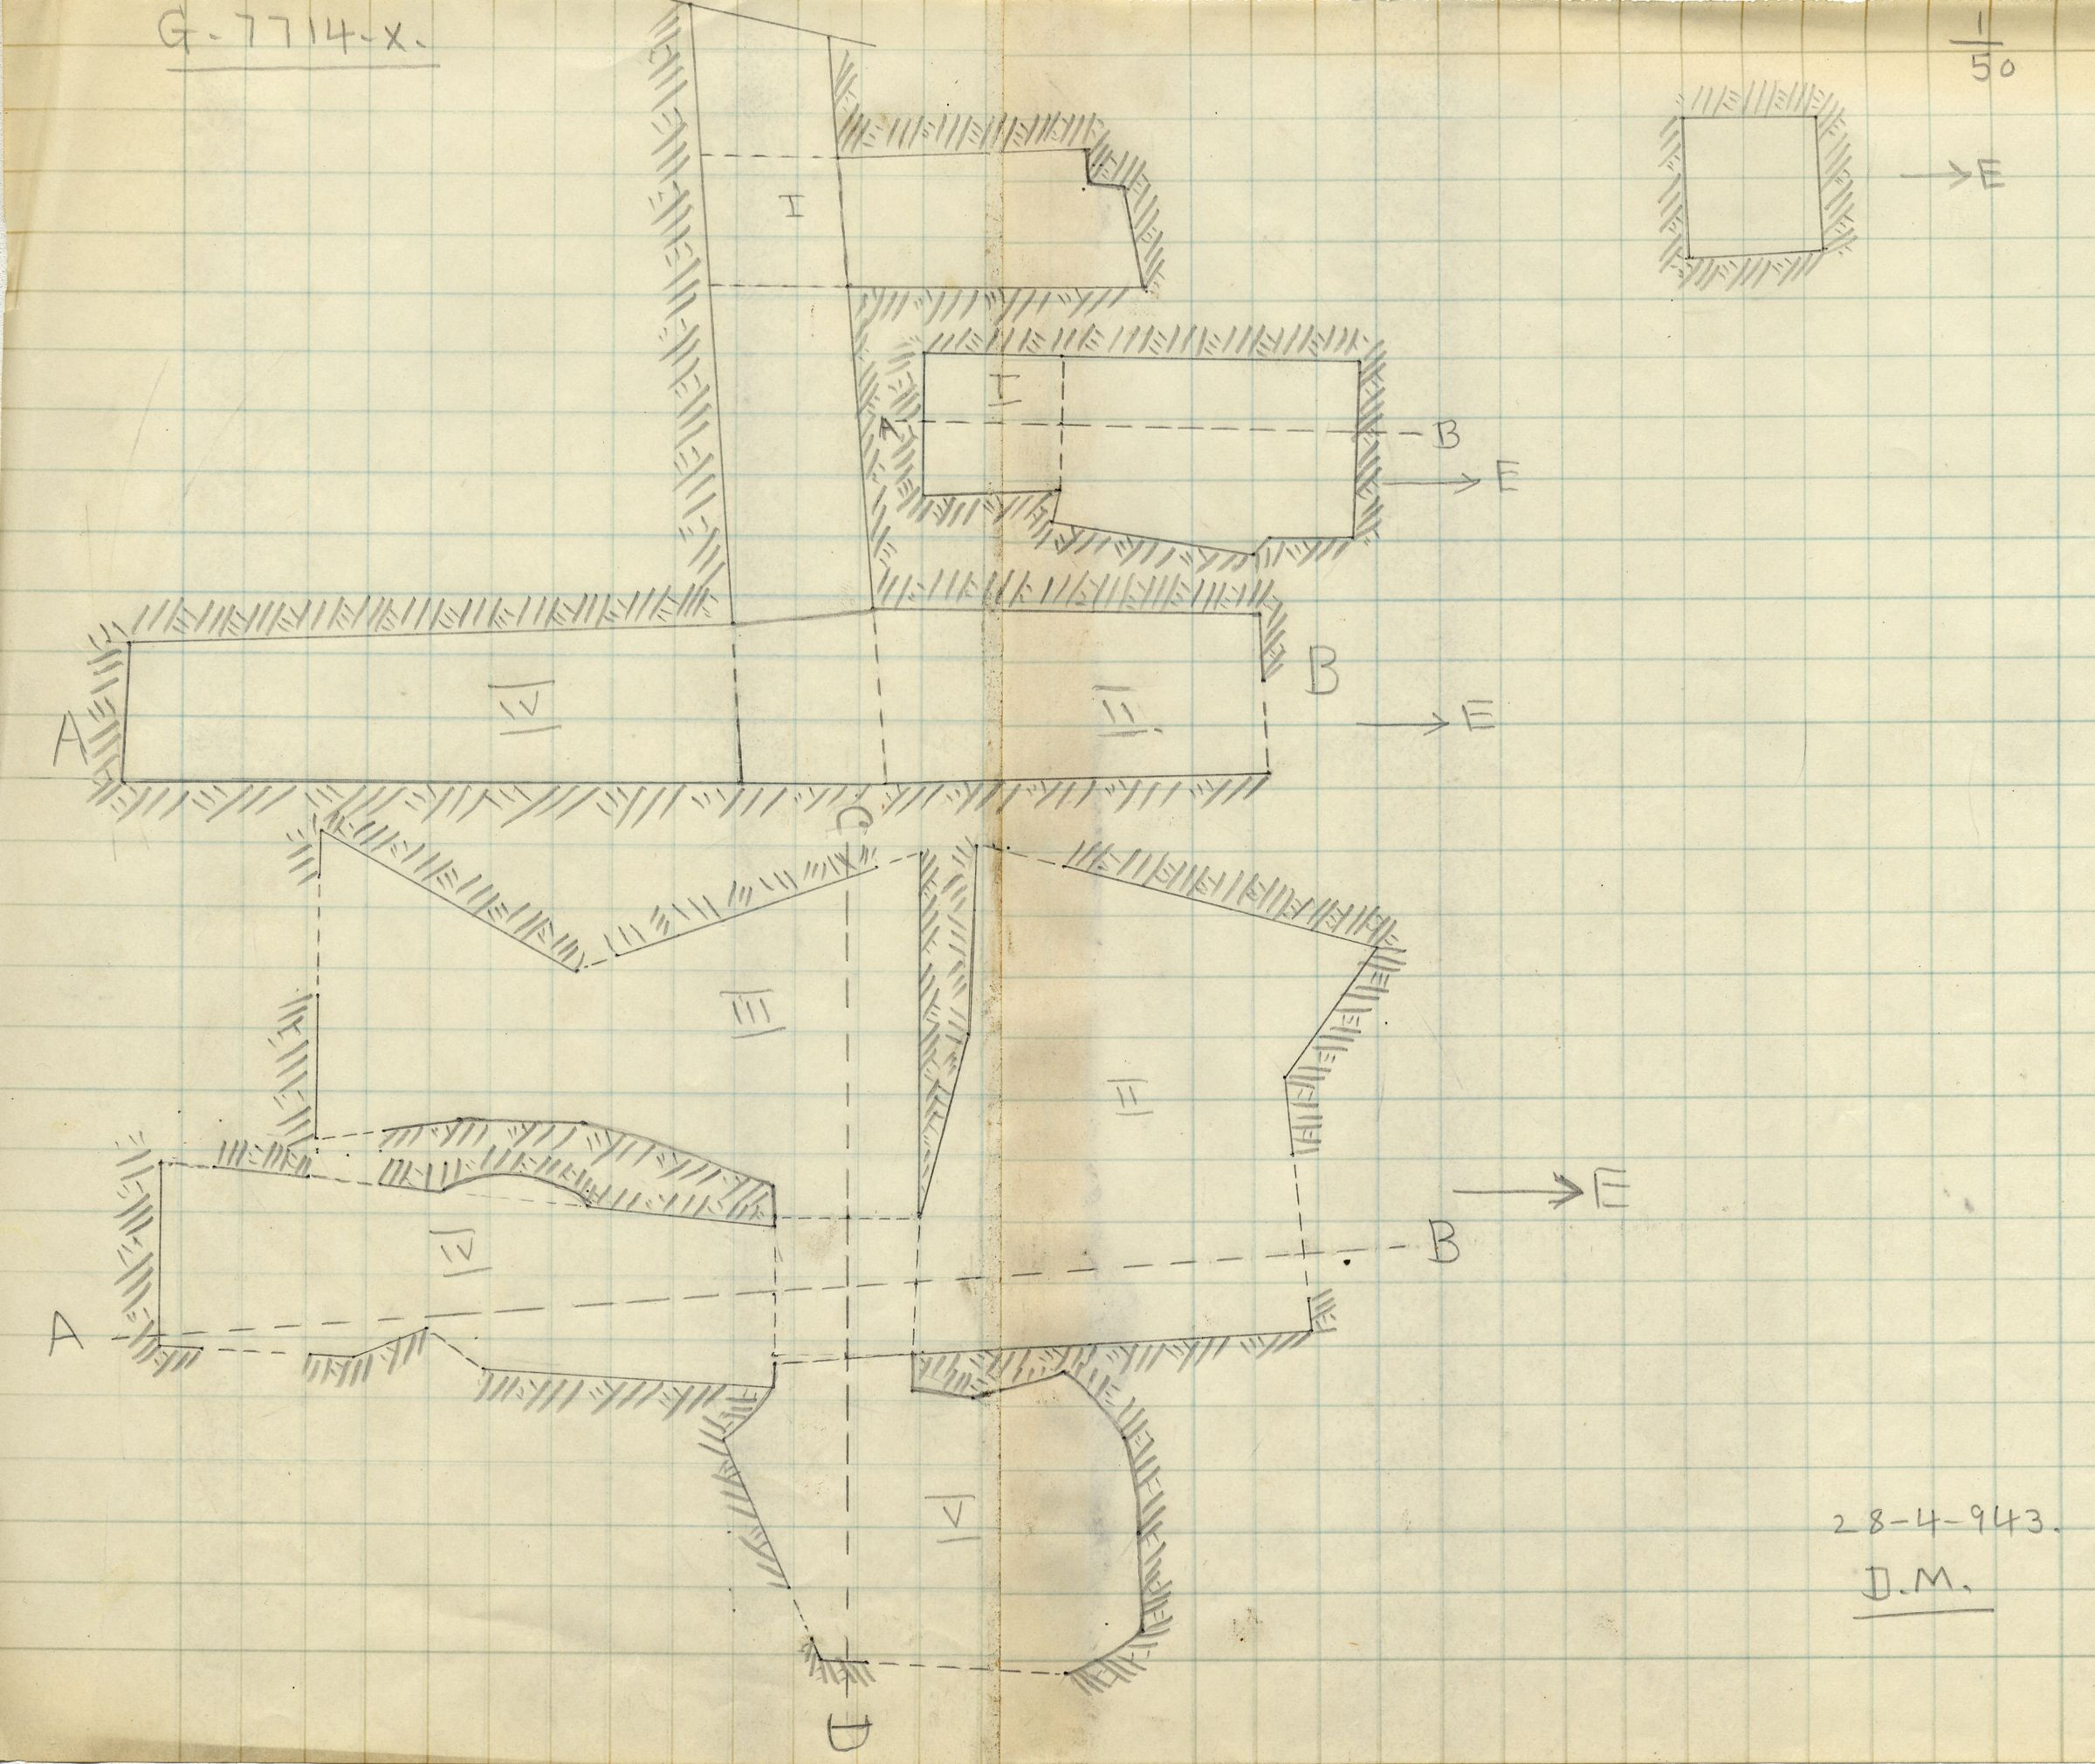 Maps and plans: G 7714, Shaft X